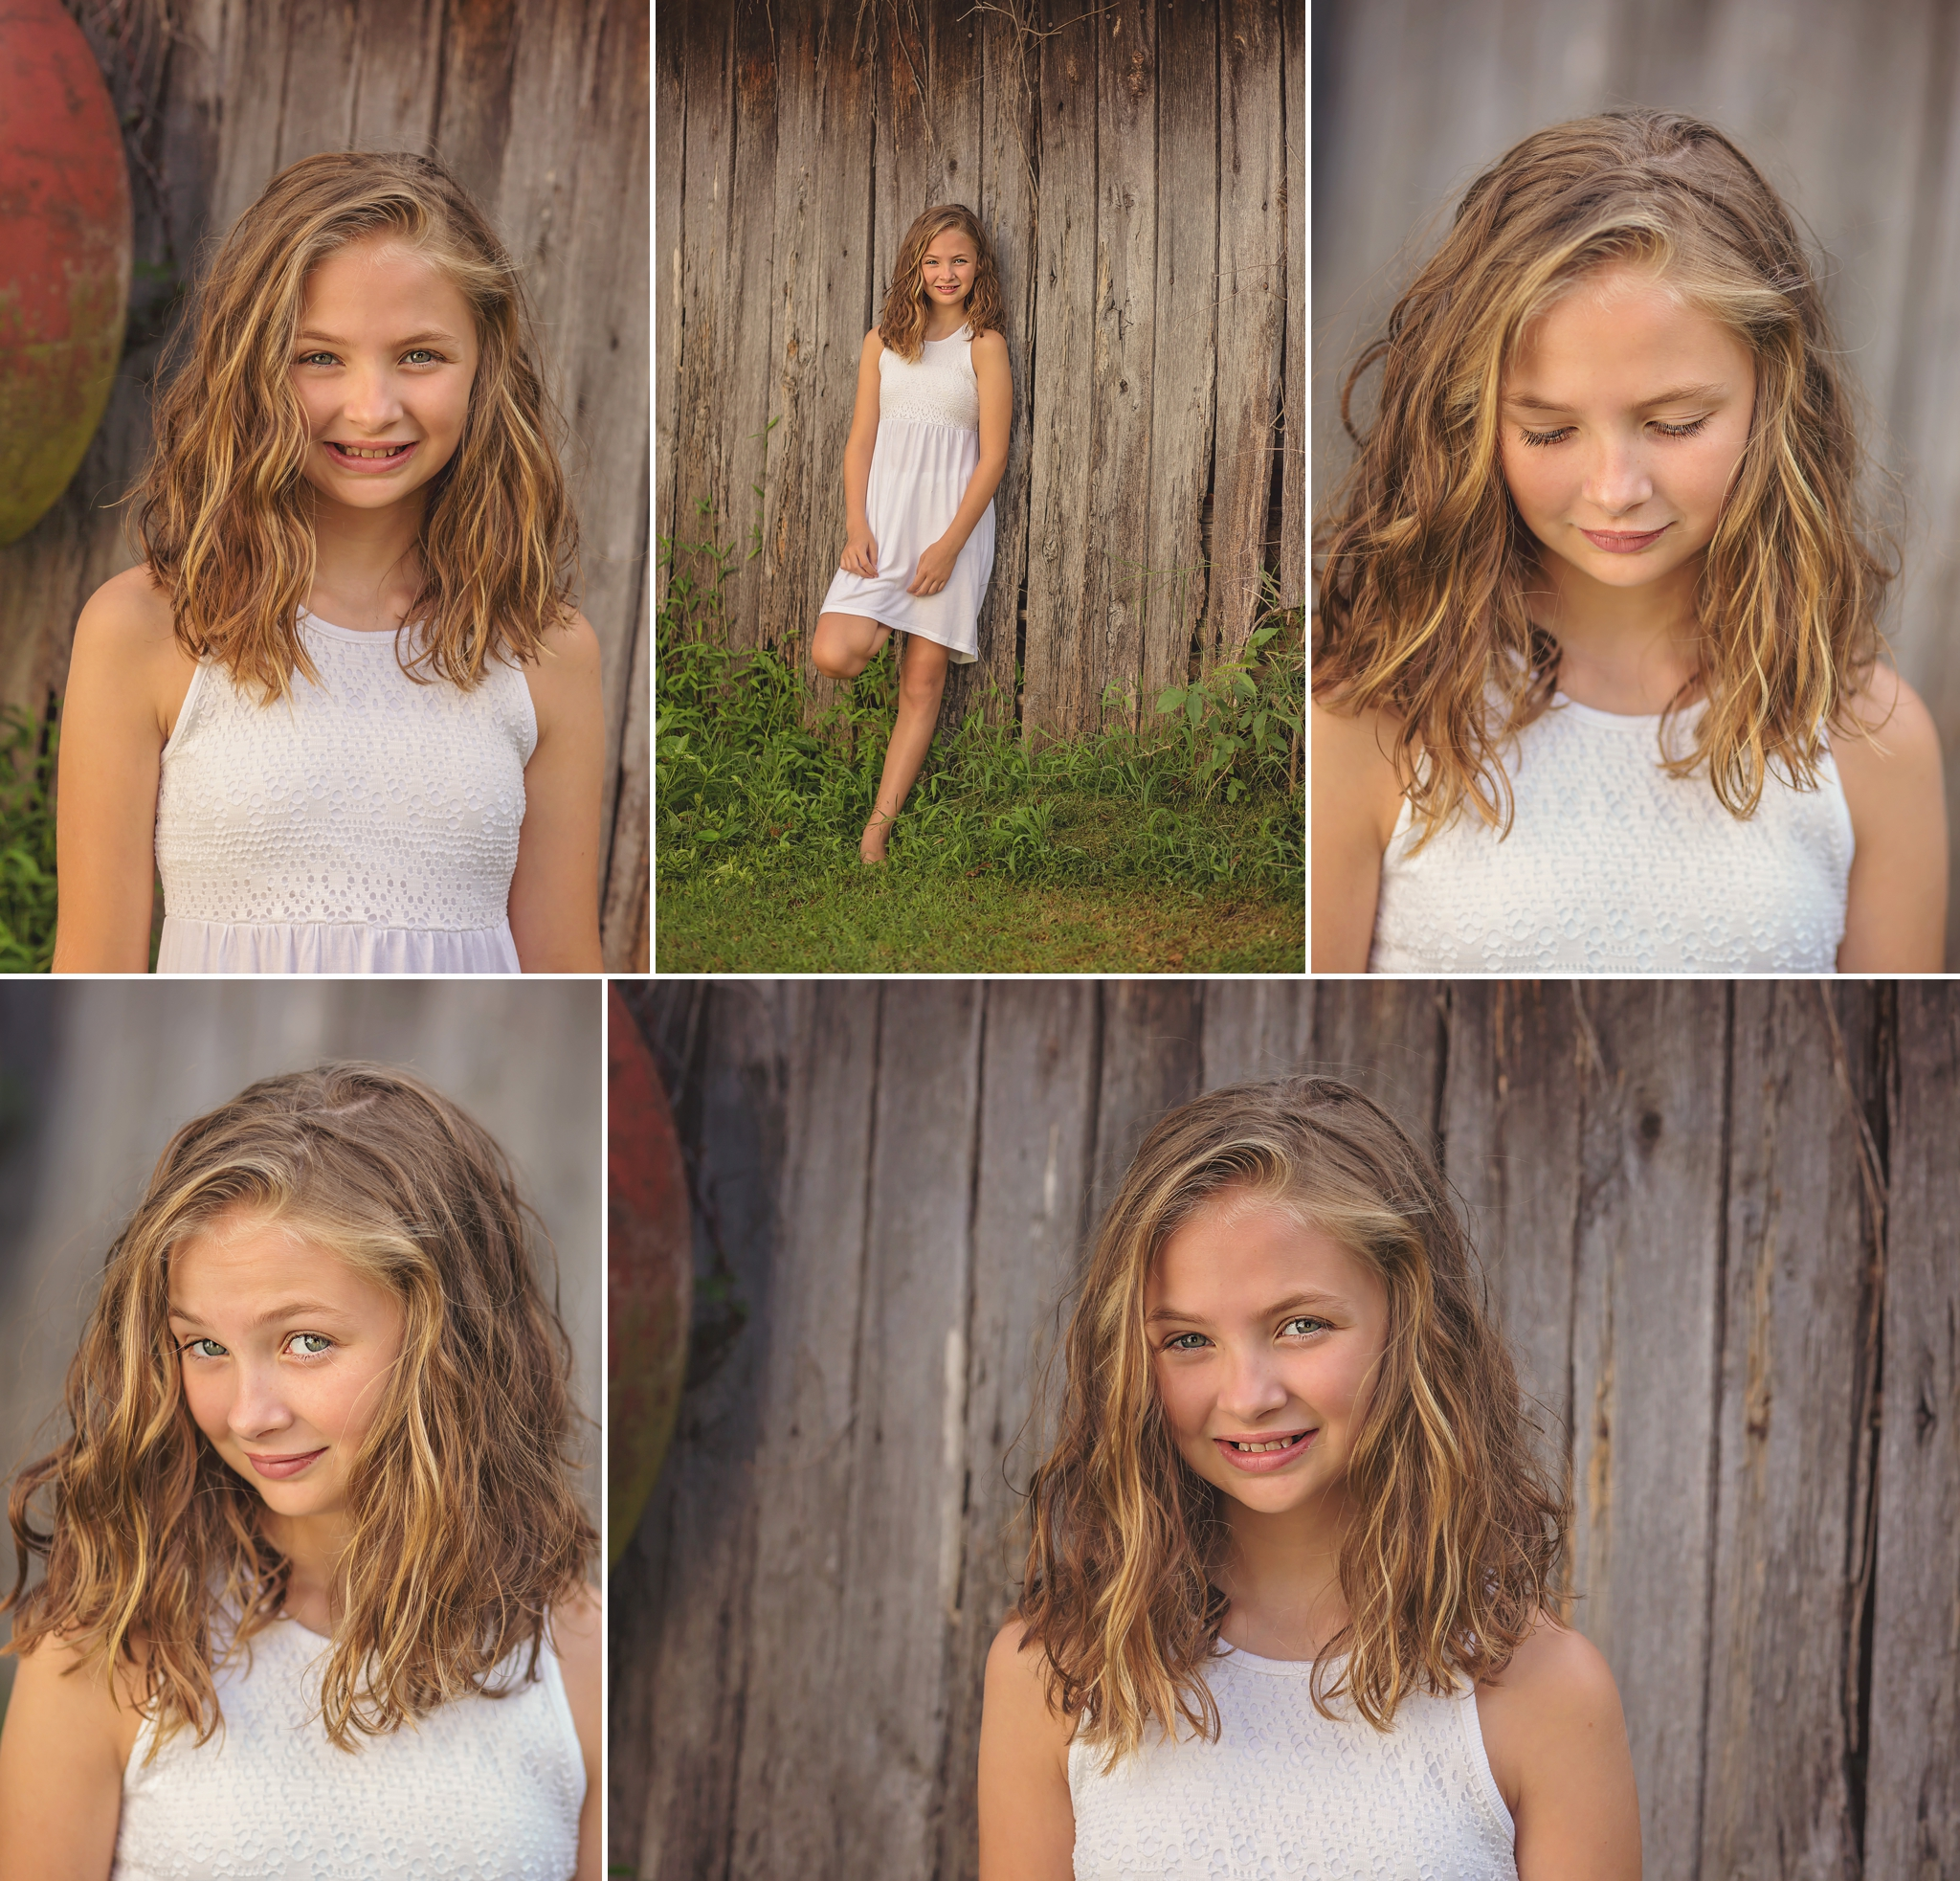 Child smiles in front of barnwood during Sanford area child photography session